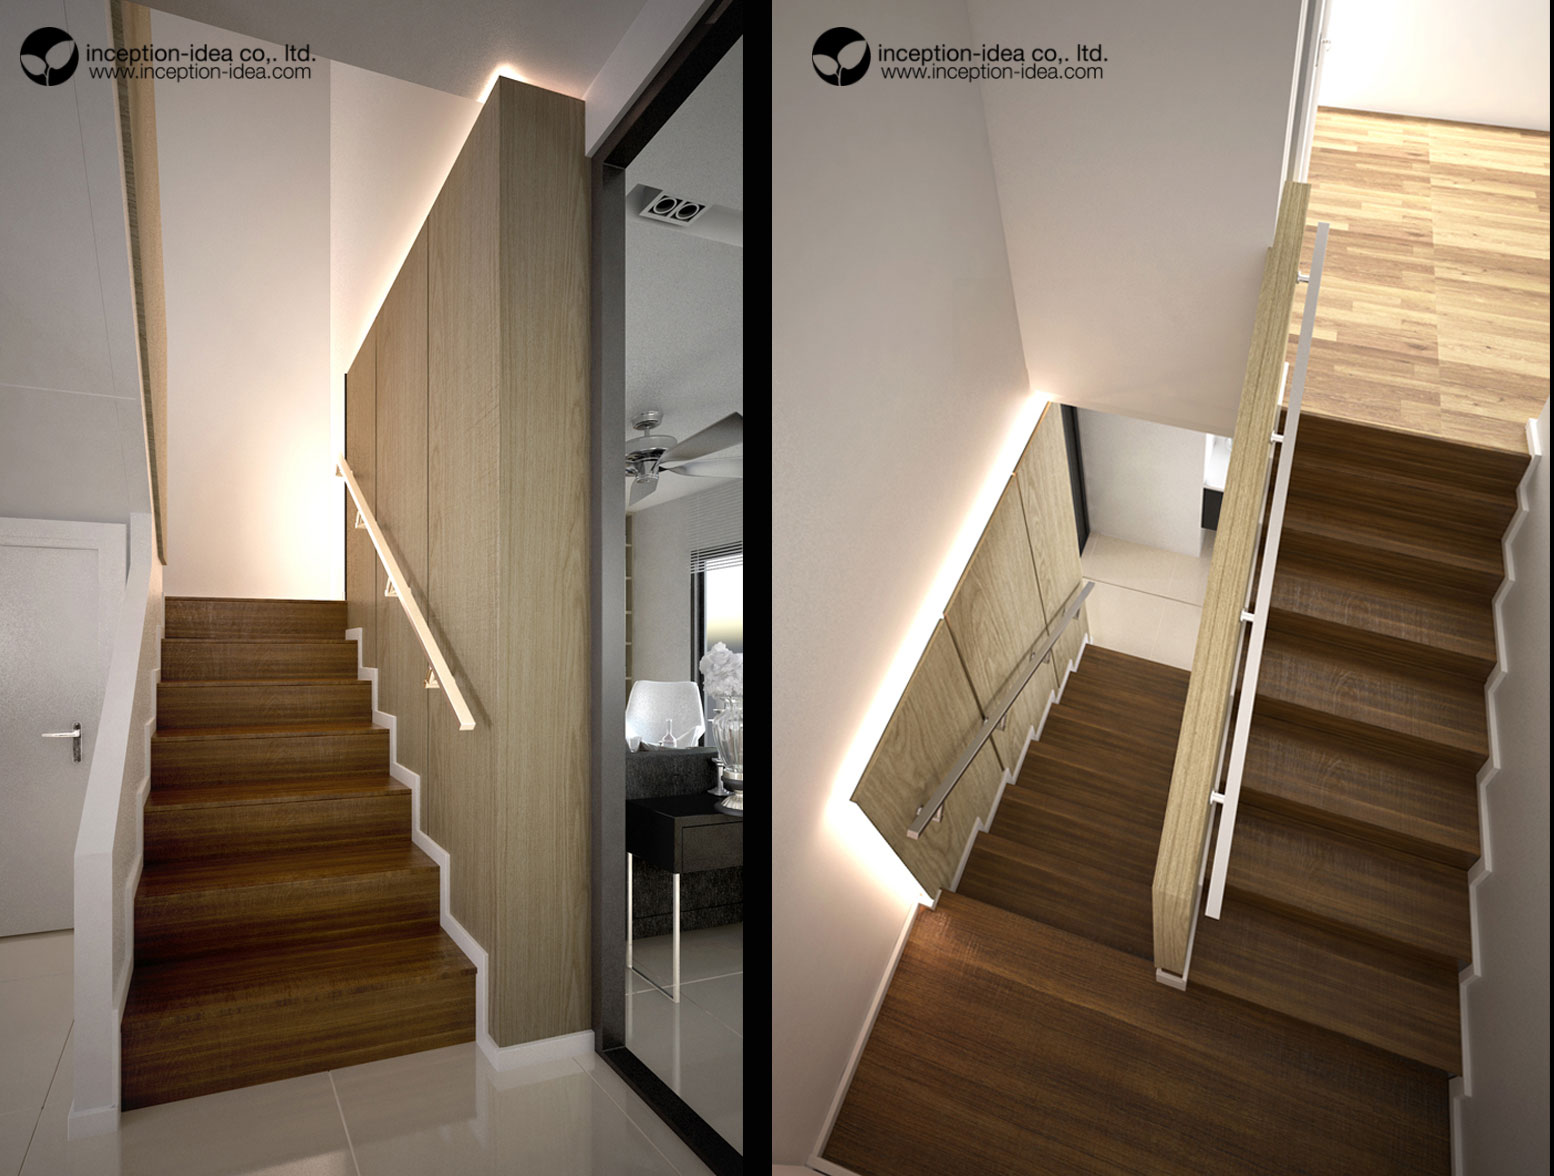 Inception Idea interior design